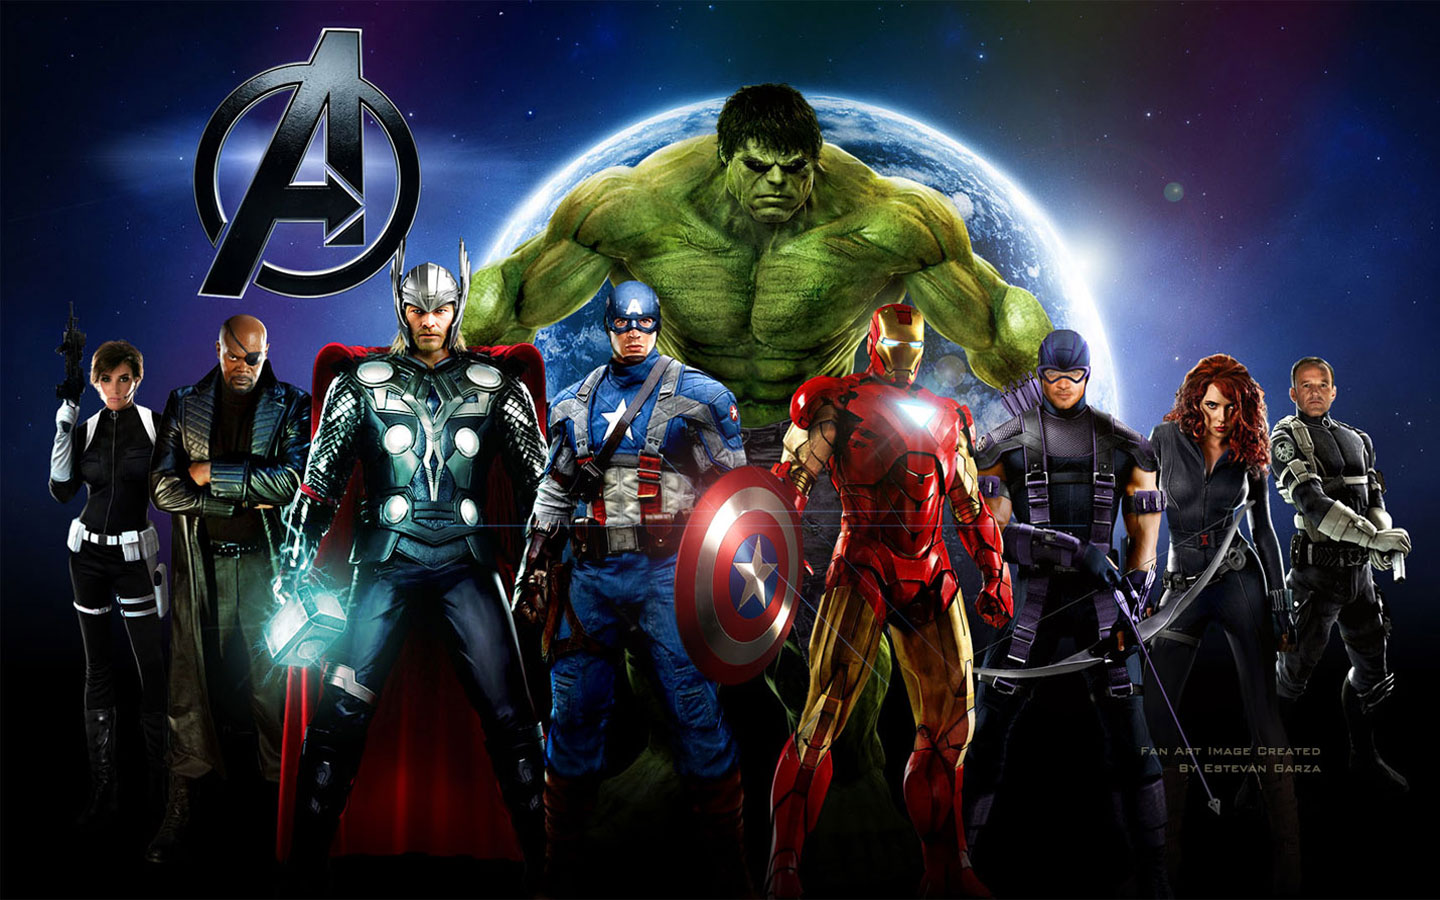 Cool the avengers wallpapers download the avengers wallpapers full the